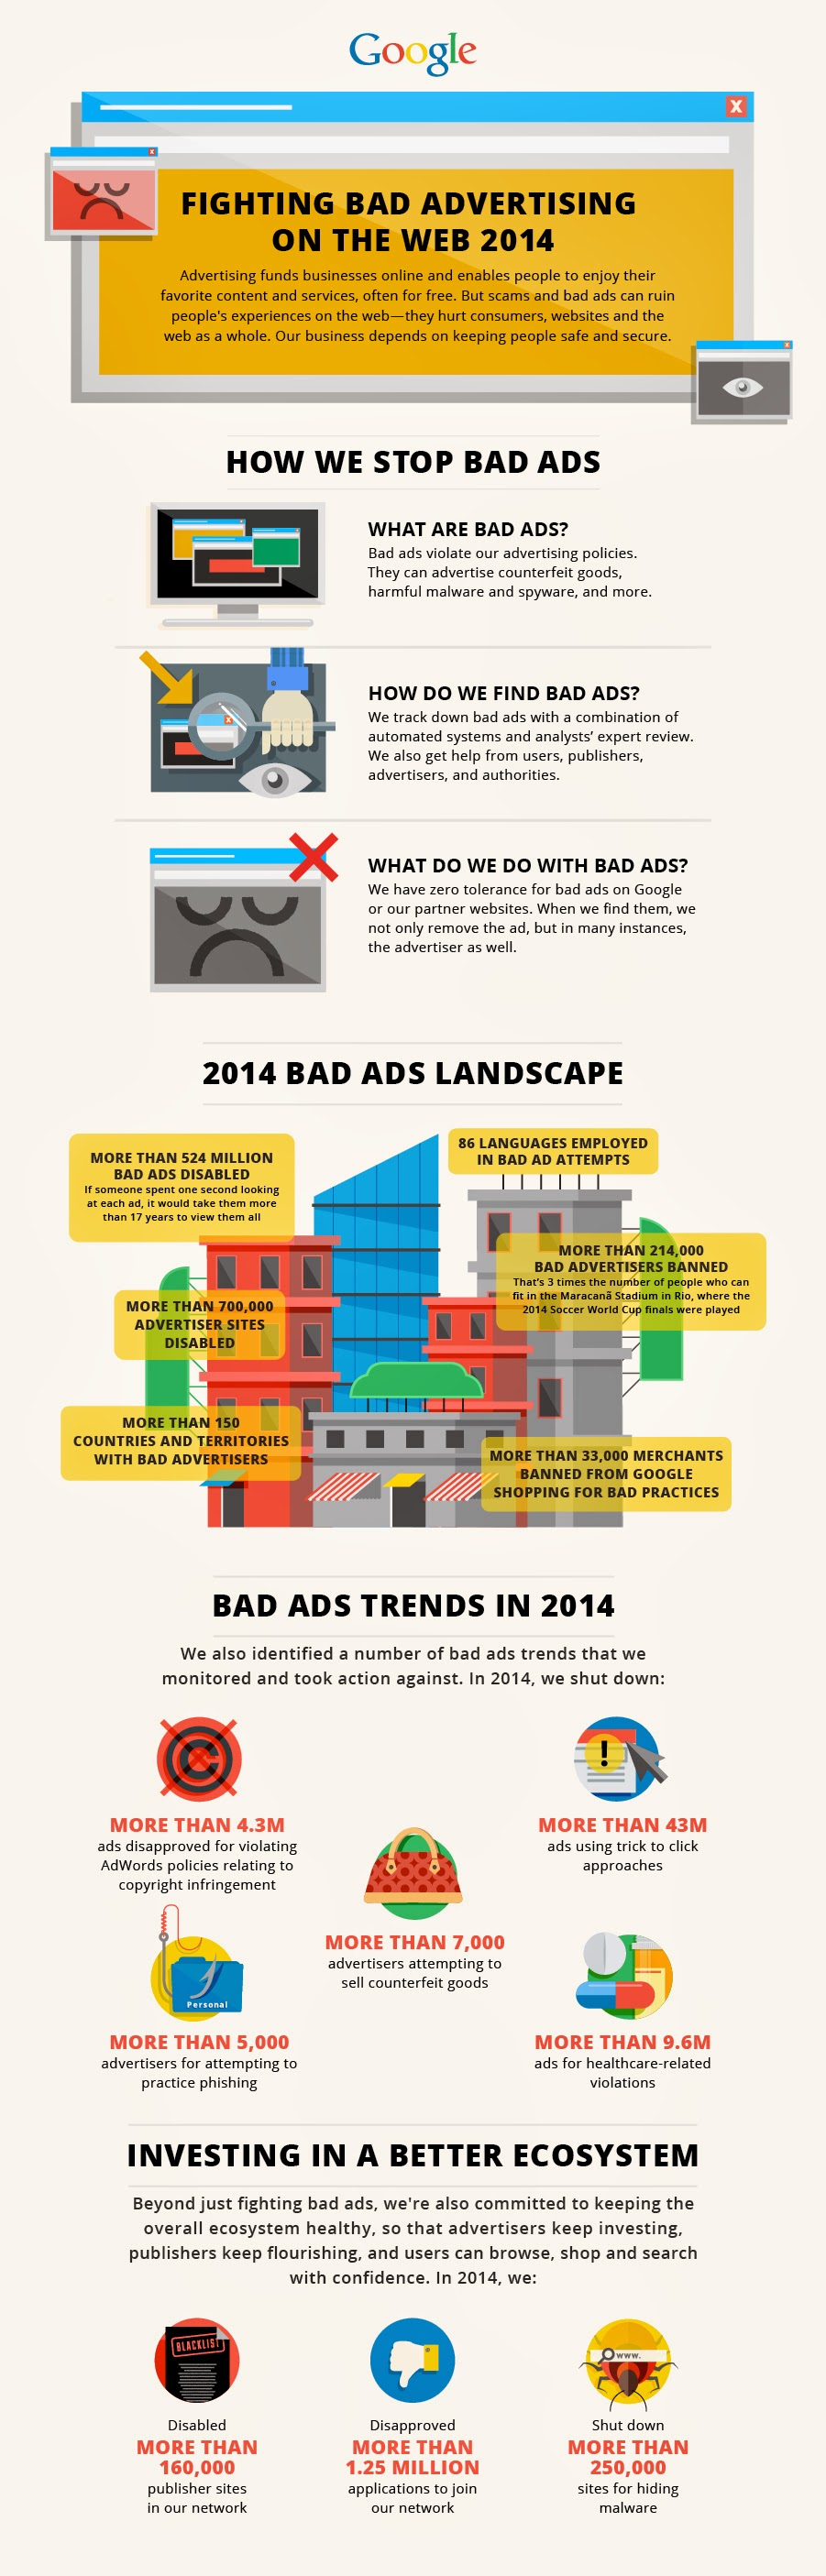 Fighting Bad Advertising on the Web 2014 #infographic